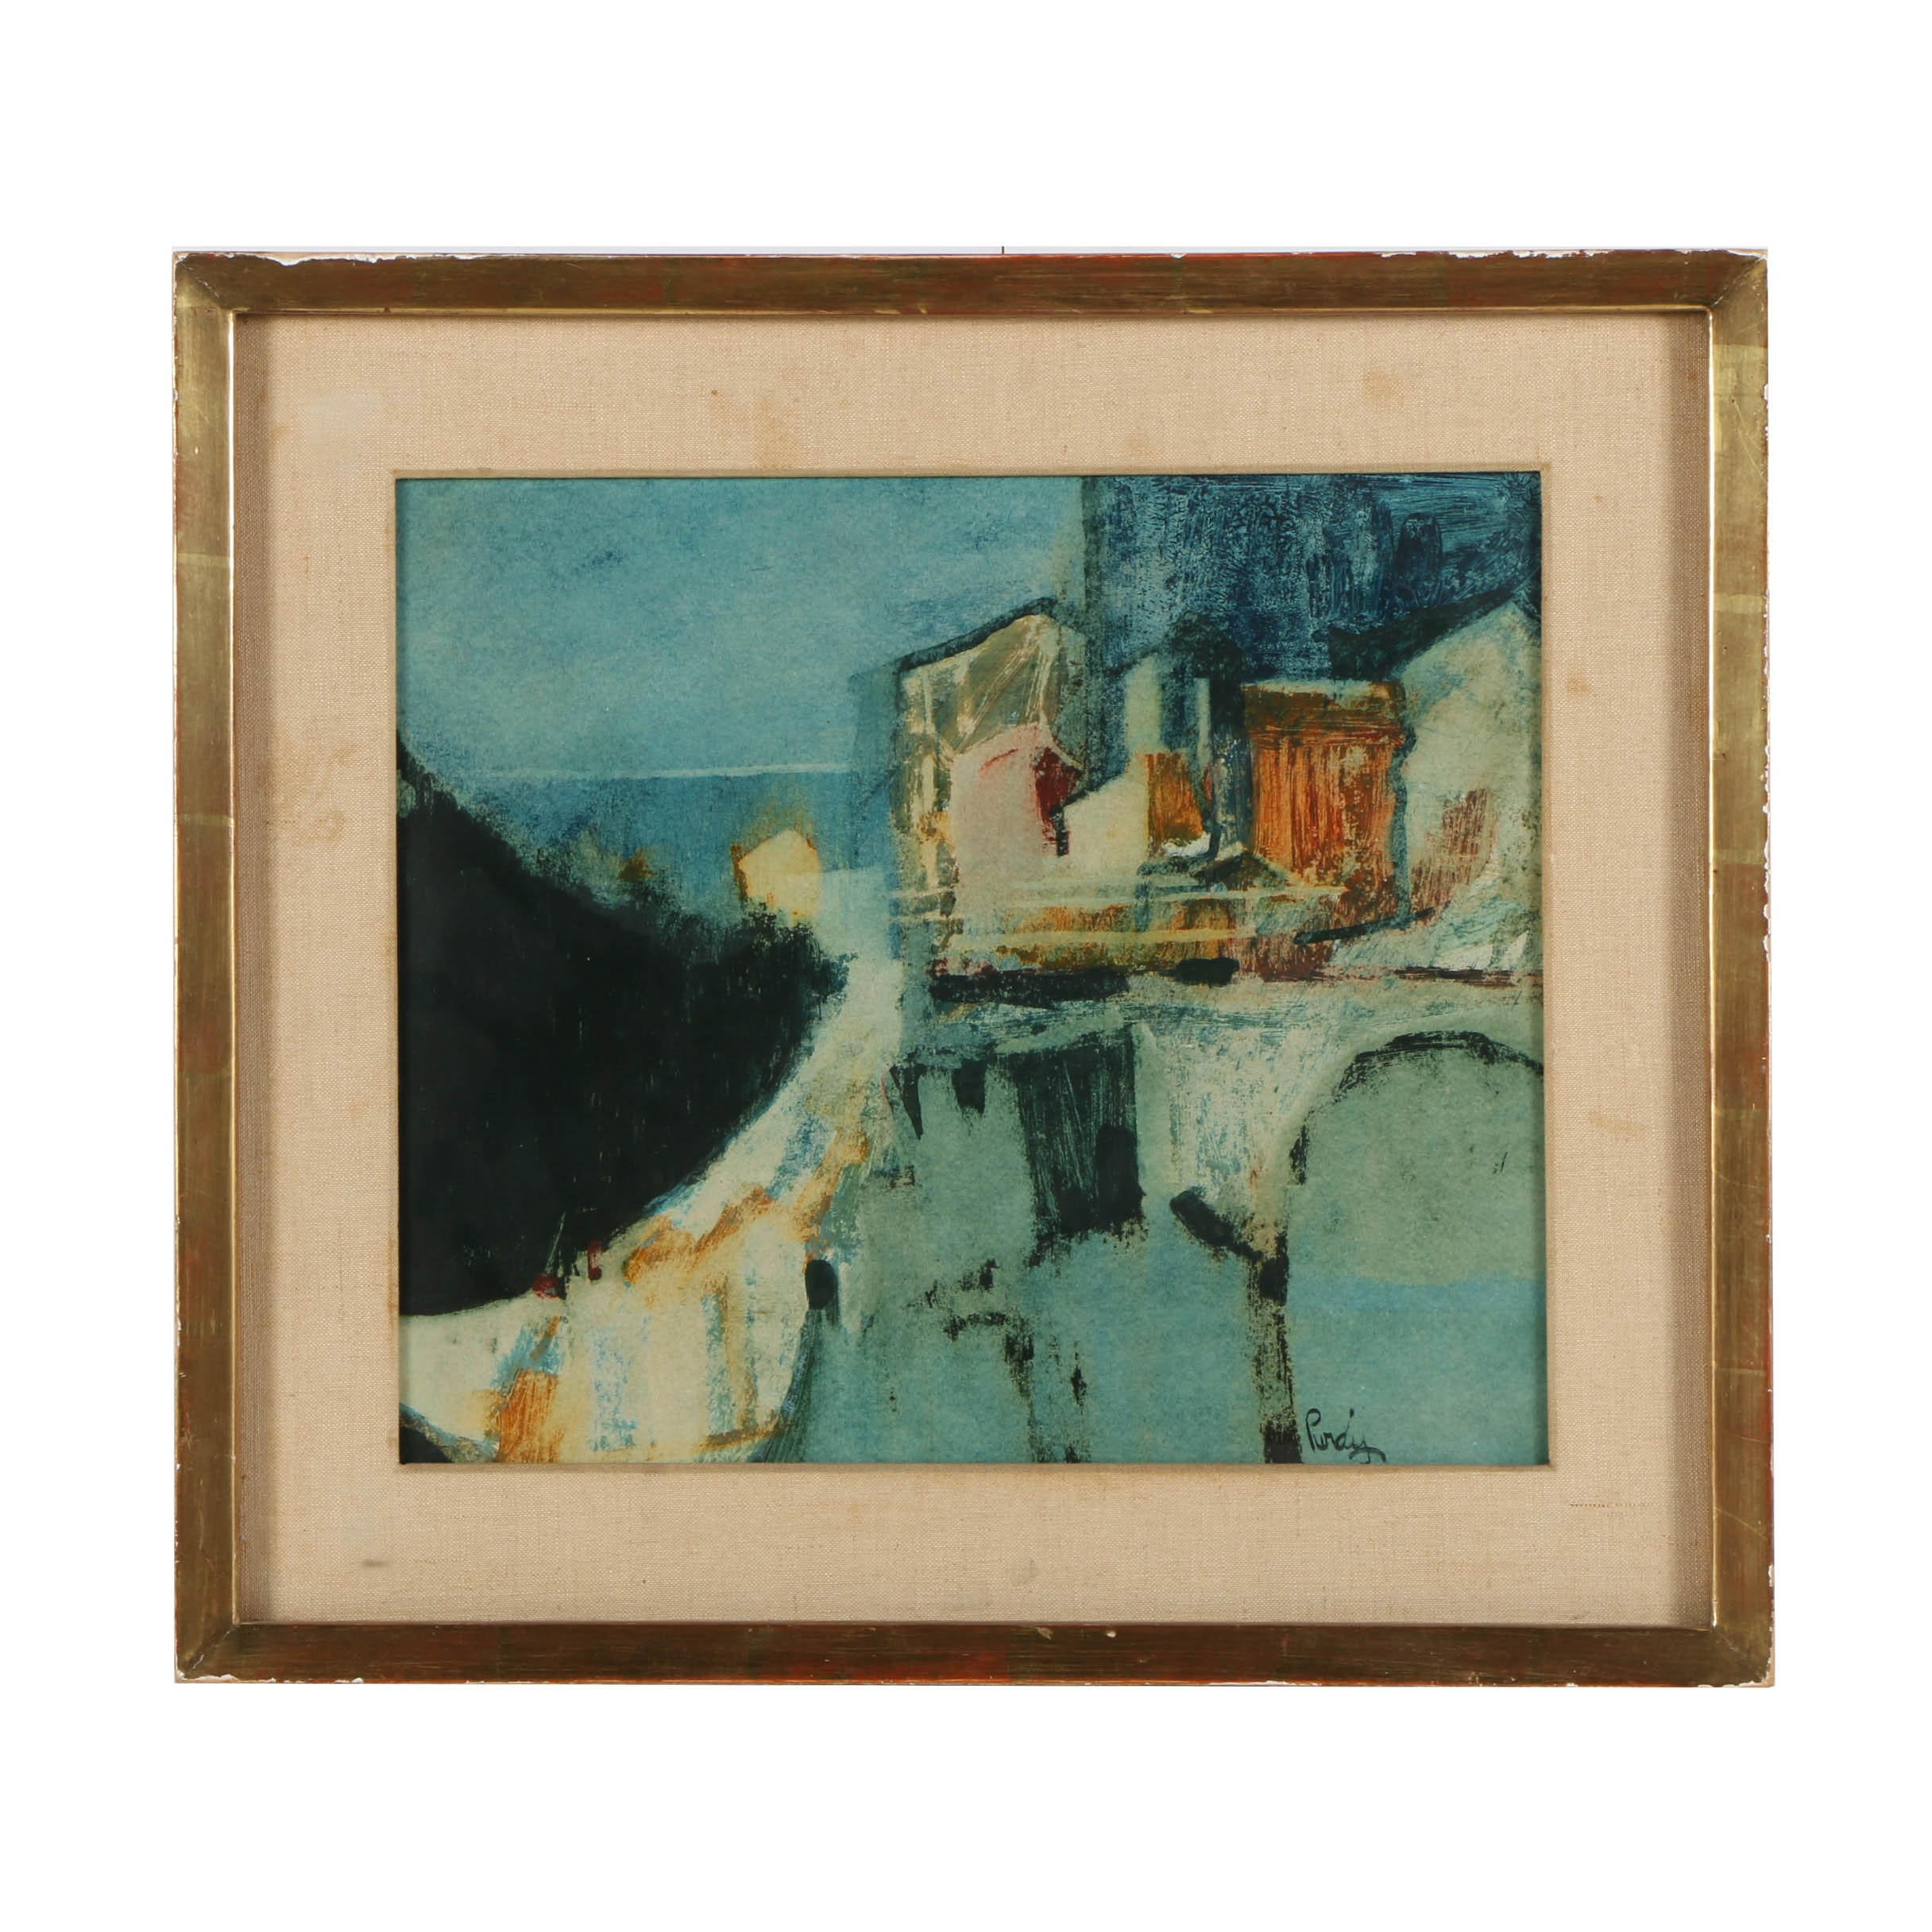 Donald Purdy Oil Painting on Board Abstract Architectural Scene